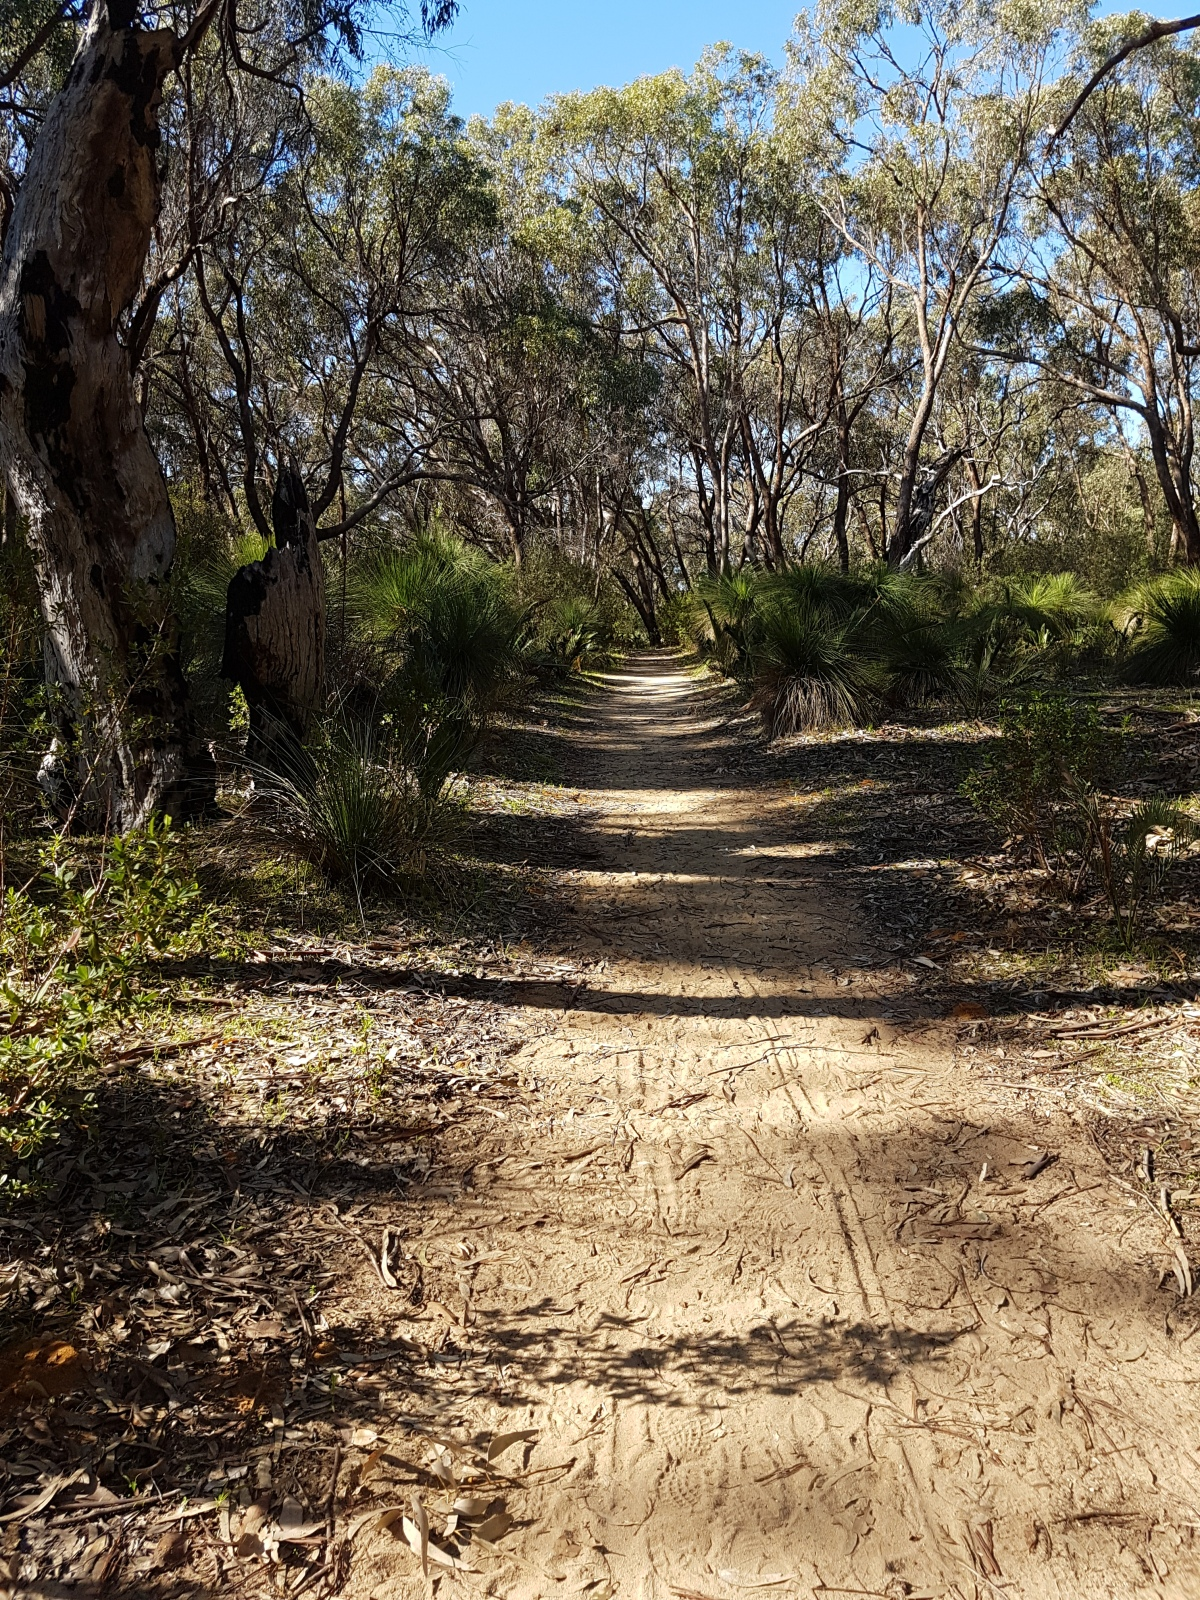 On the Rose Trail at Yanchep National Park